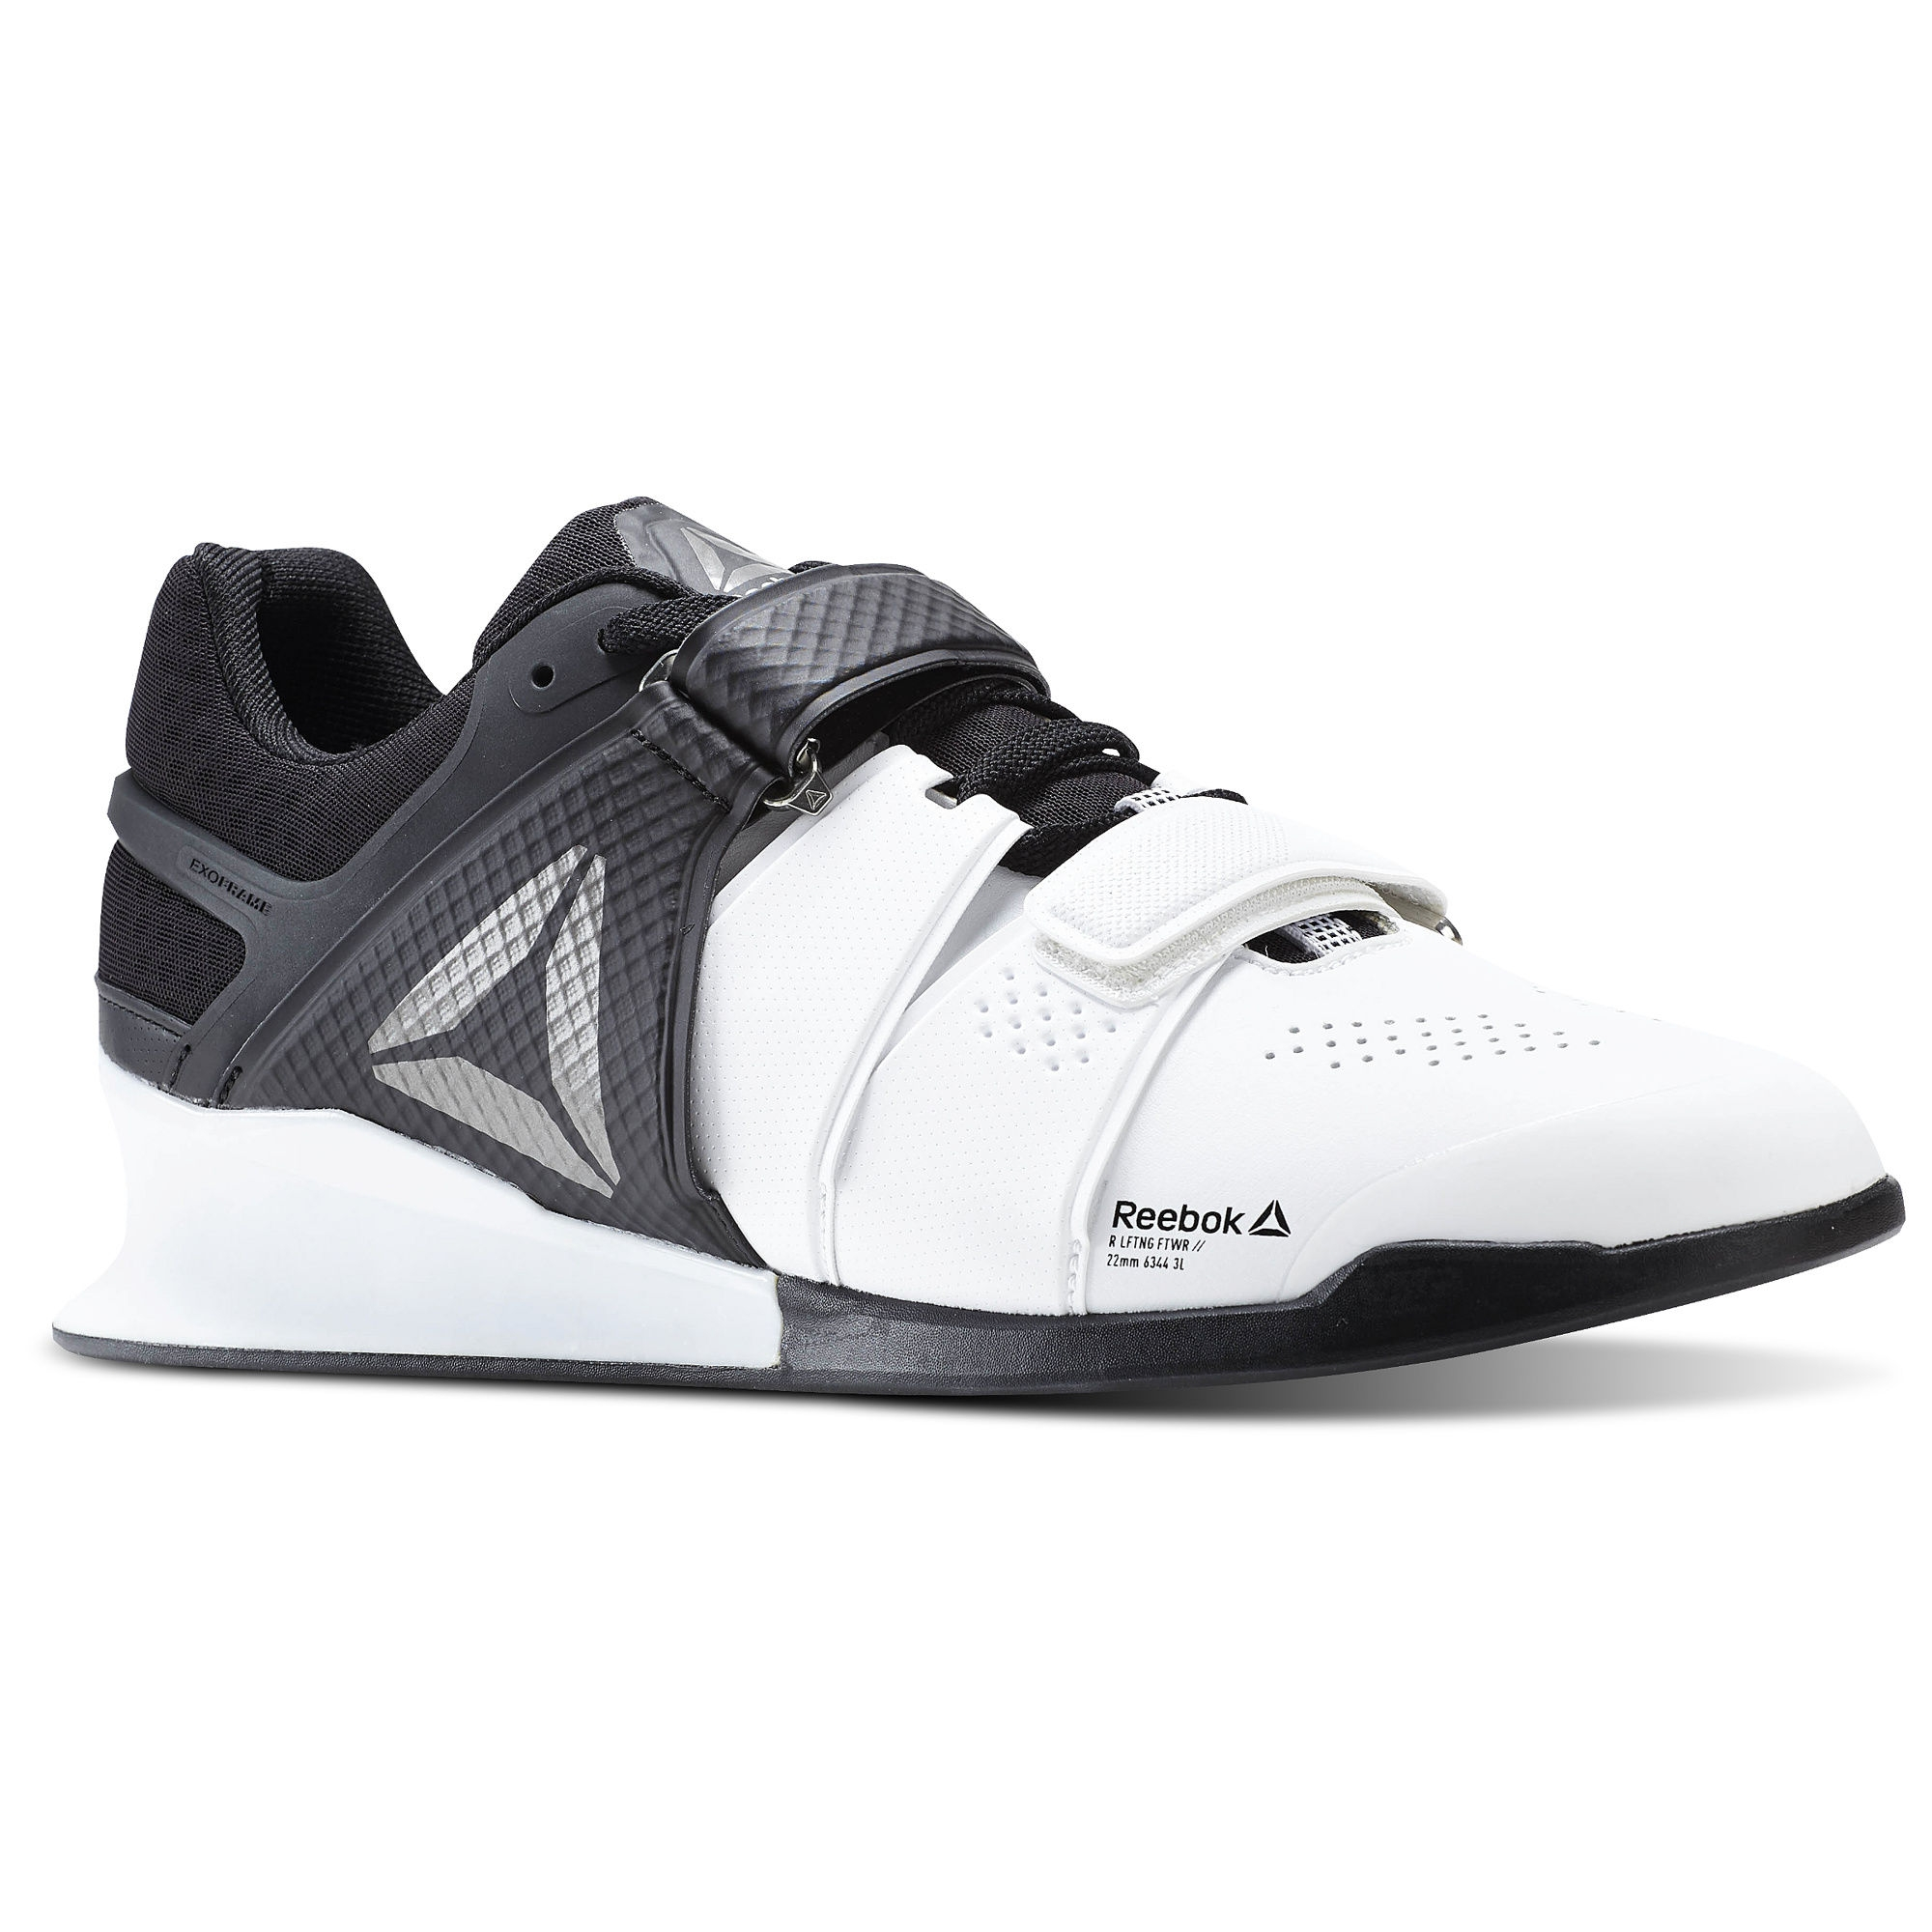 Legacylifter Legacylifter Reebok Chaussures Legacylifter Chaussures Reebok Reebok Chaussures BOZBx1Swq